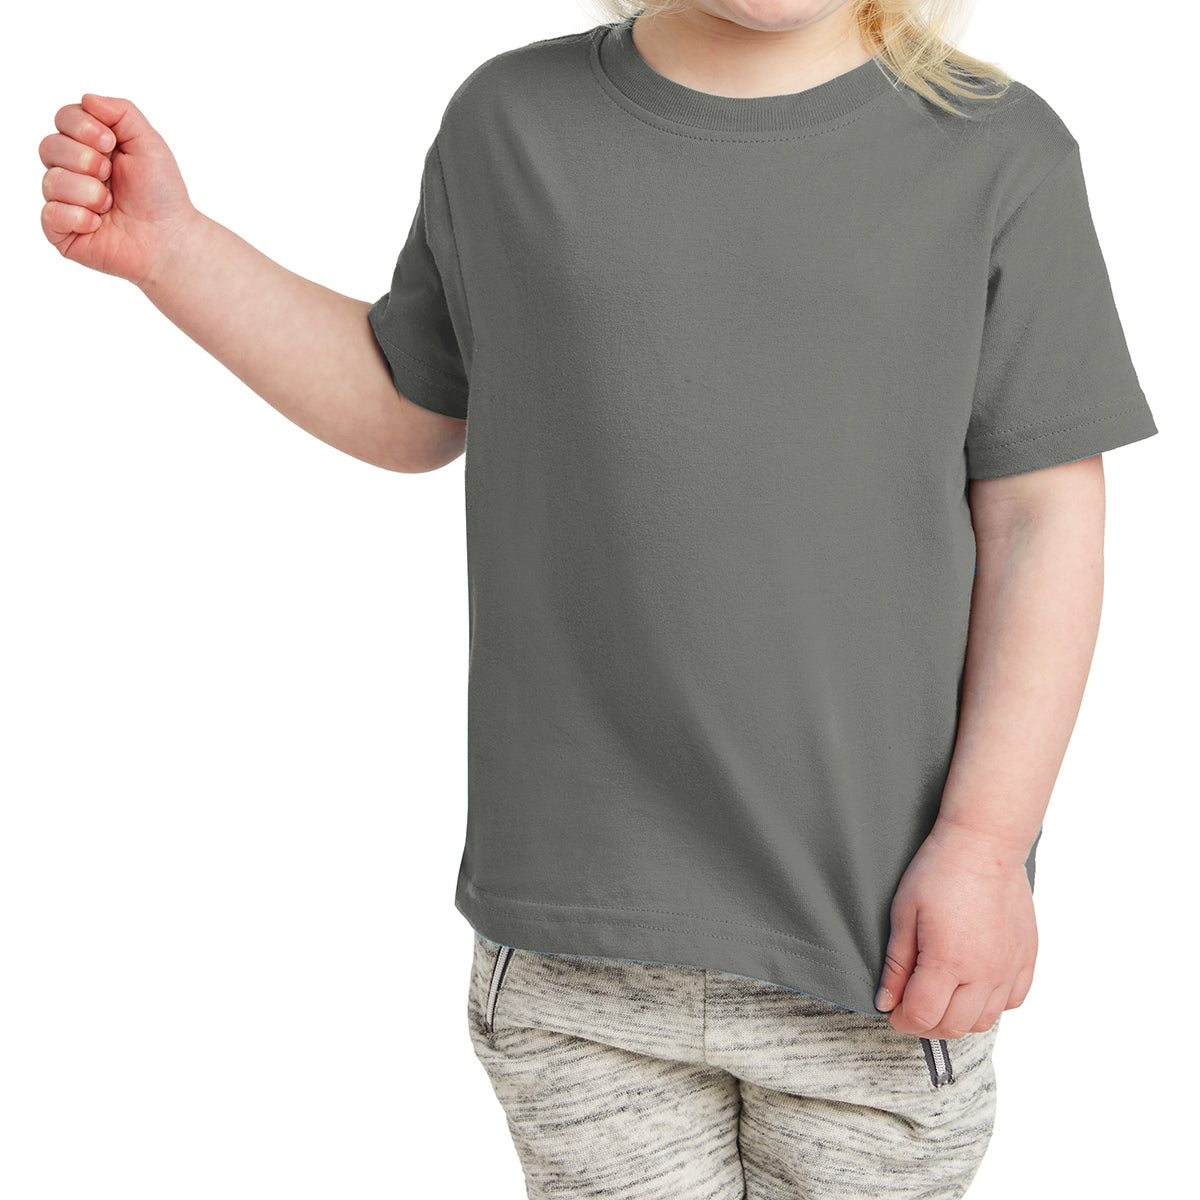 Toddler Fine Jersey Tee - Charcoal